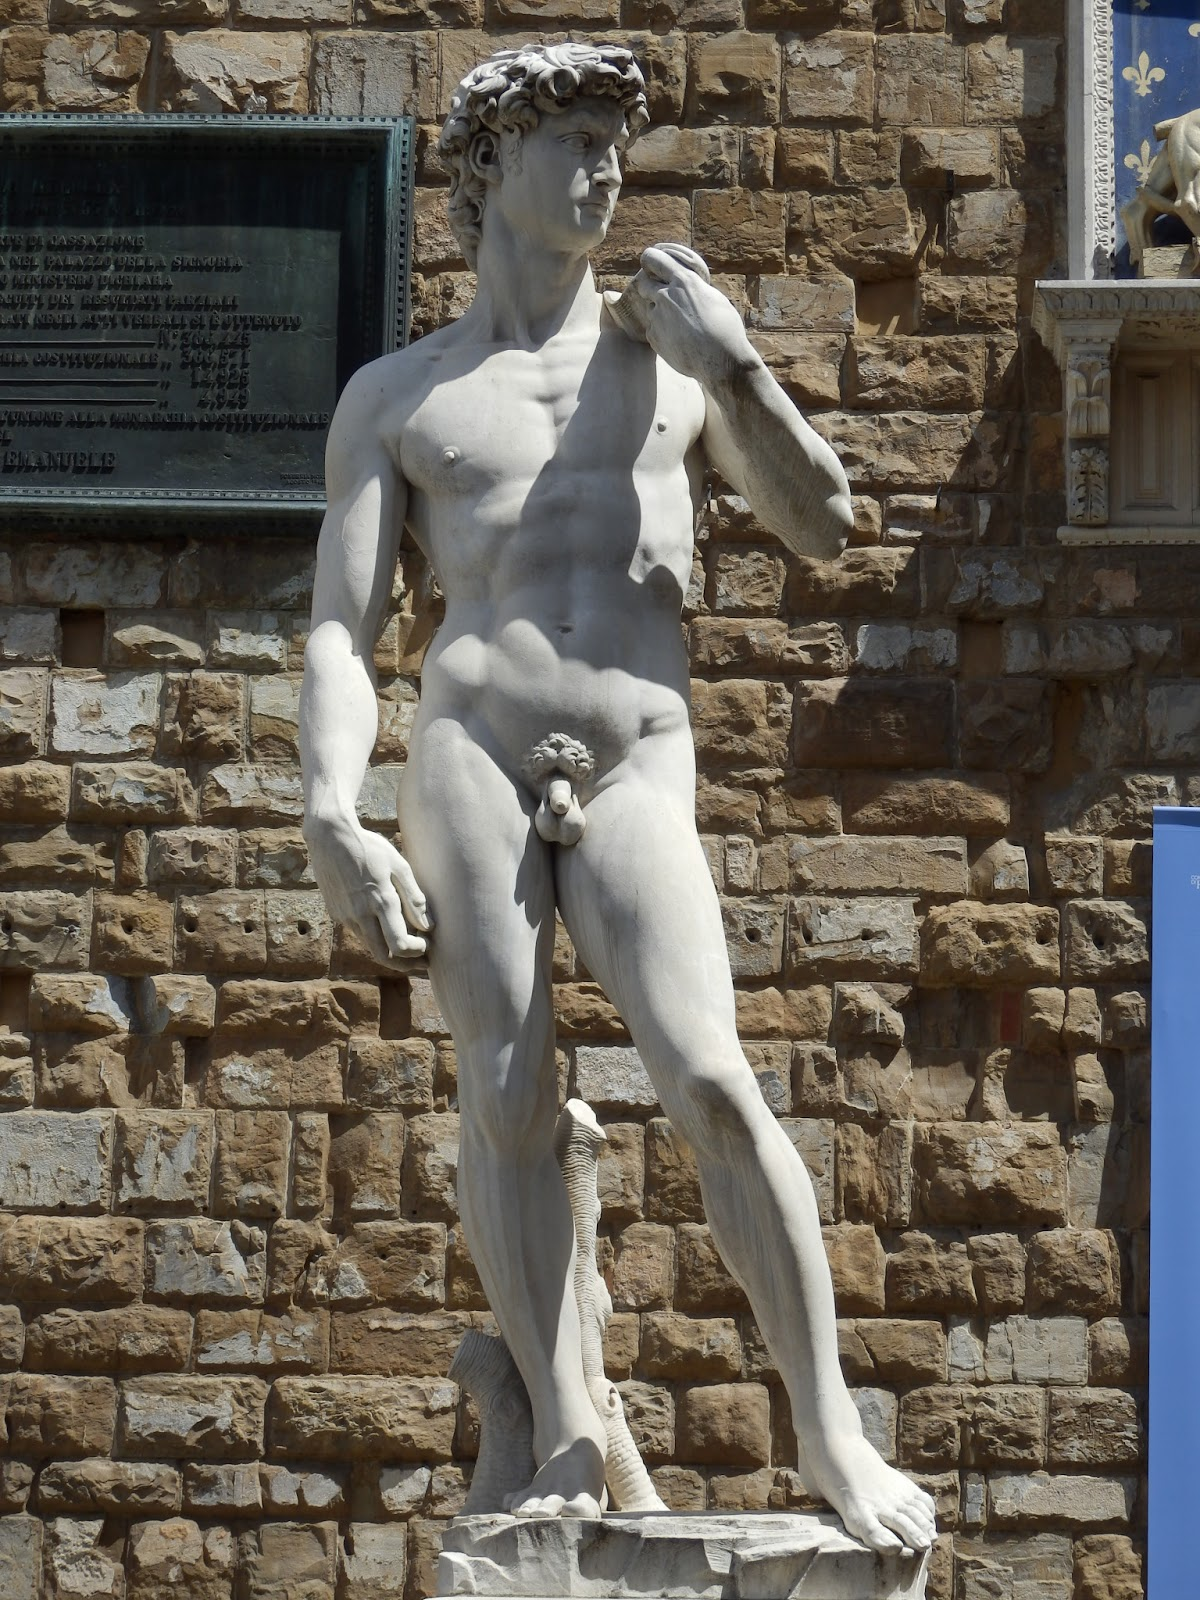 a brief biography of michelangelo Raphael, born raffaello sanzio  by the age of twenty-one, raphael had moved to florence, where he embraced the works of michelangelo and leonardo da vinci.